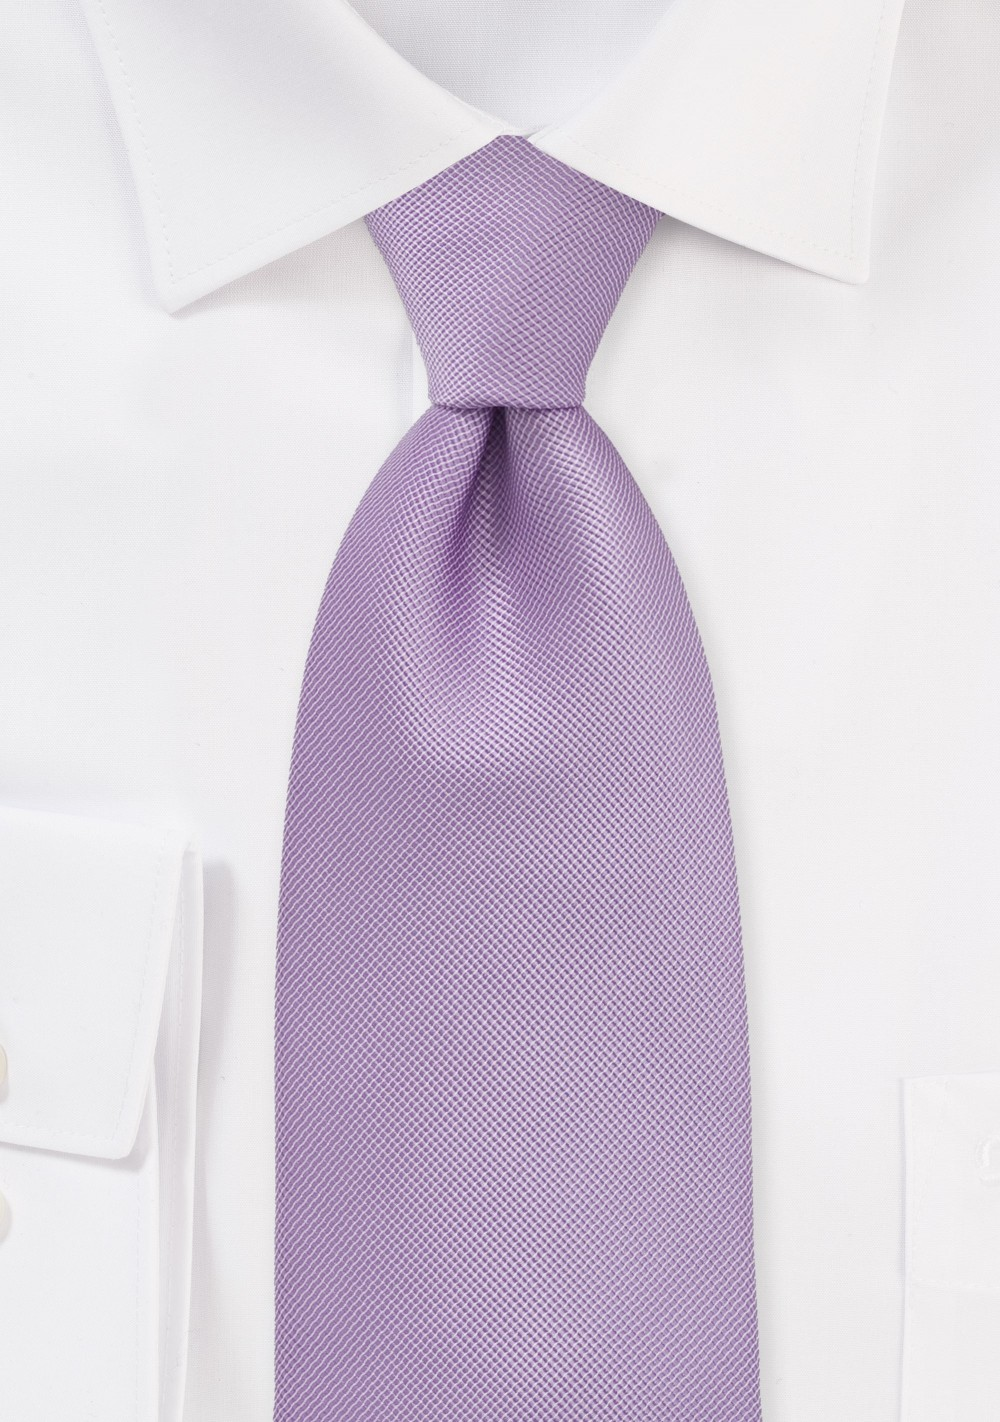 XL Sized Textured Tie in Vintage Lilac